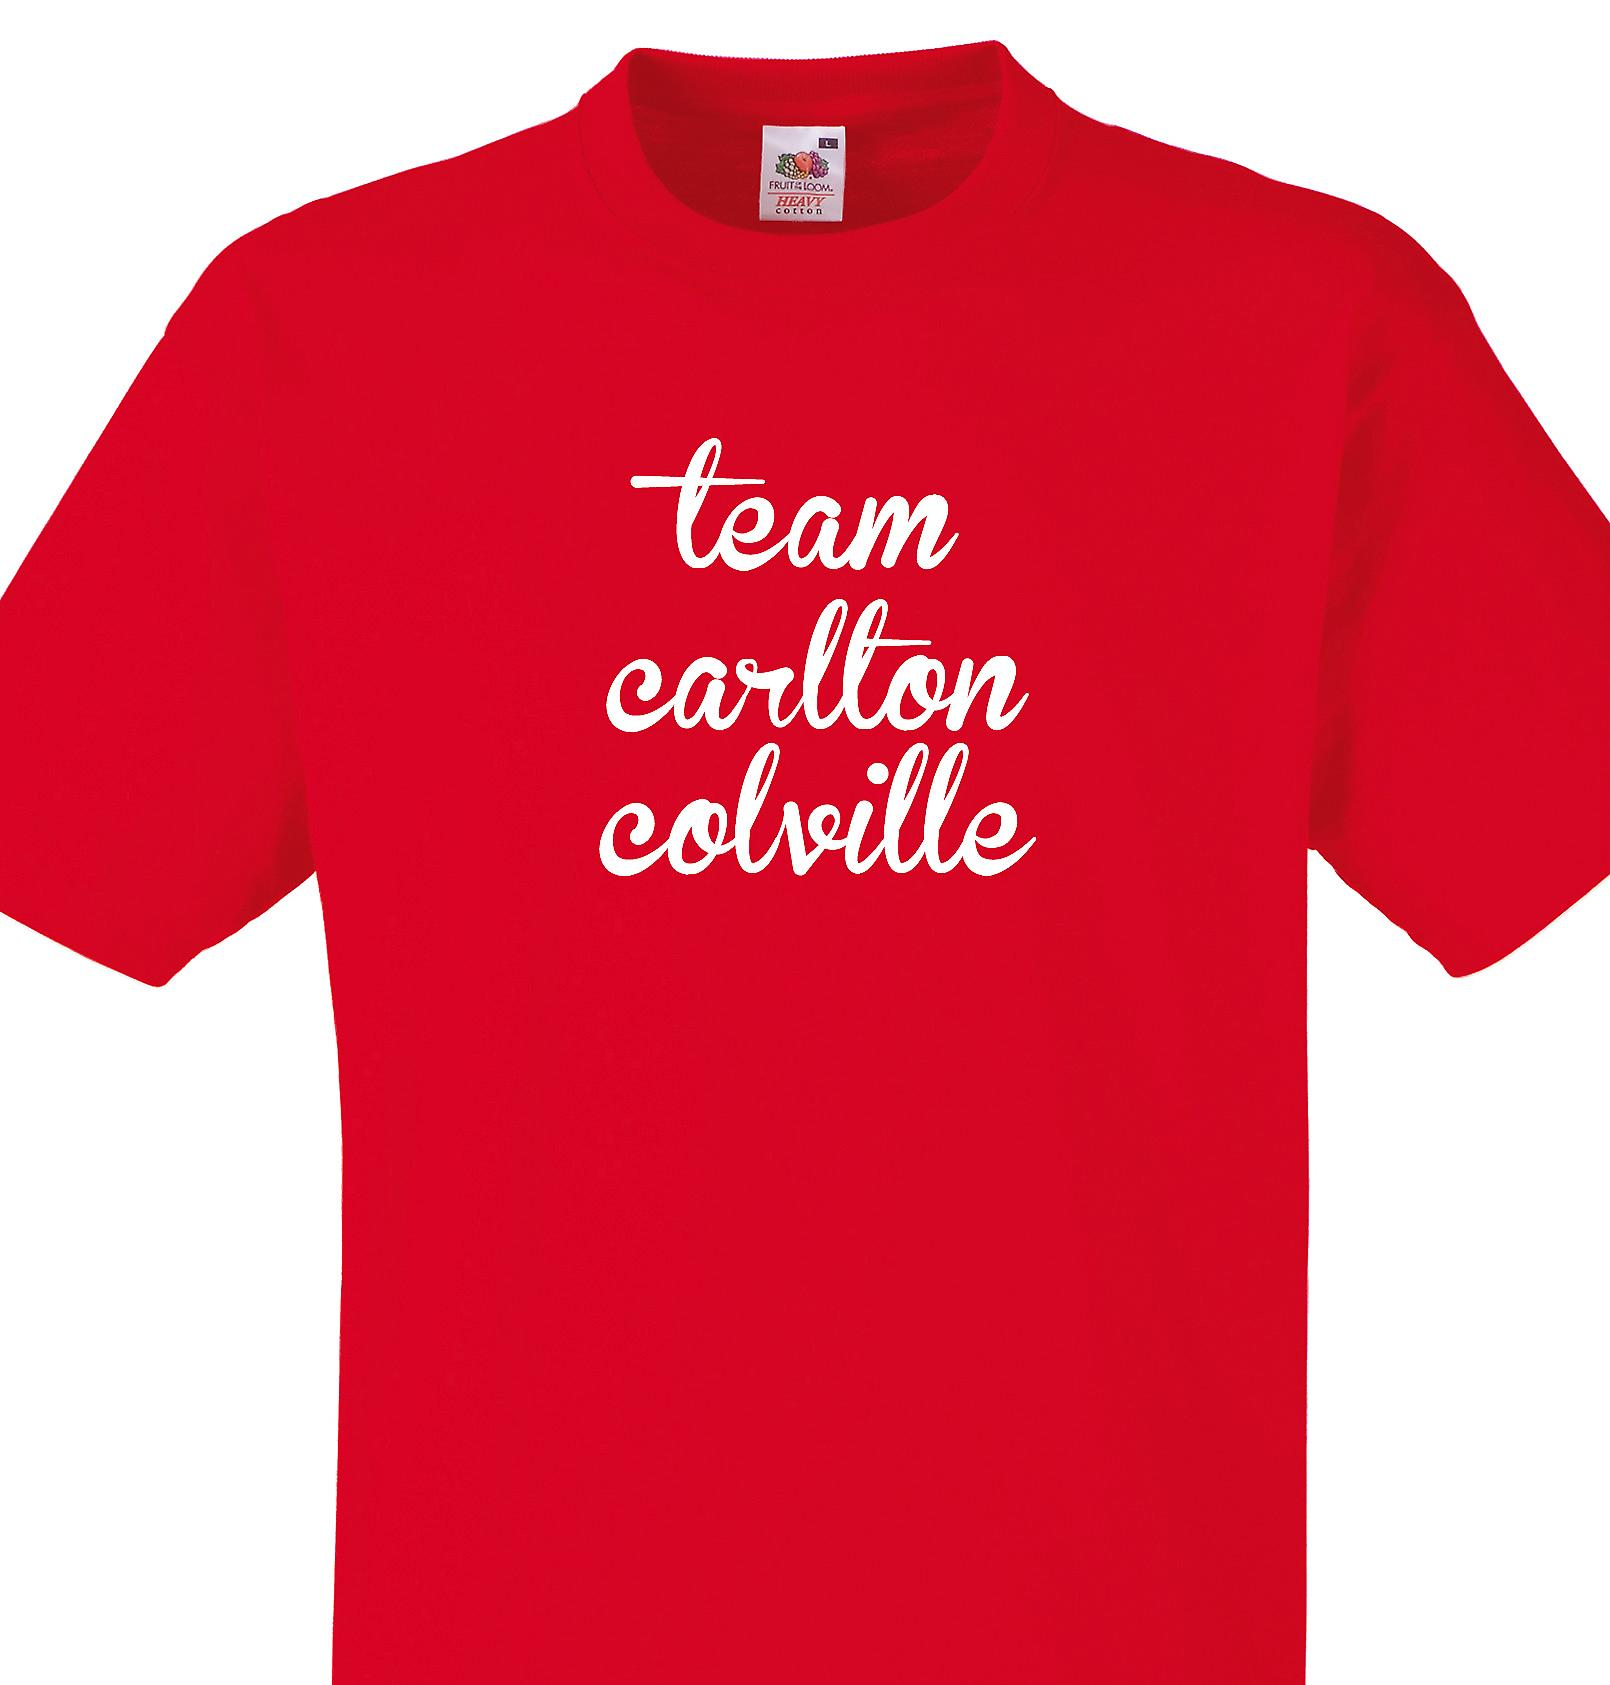 Team Carlton colville Red T shirt